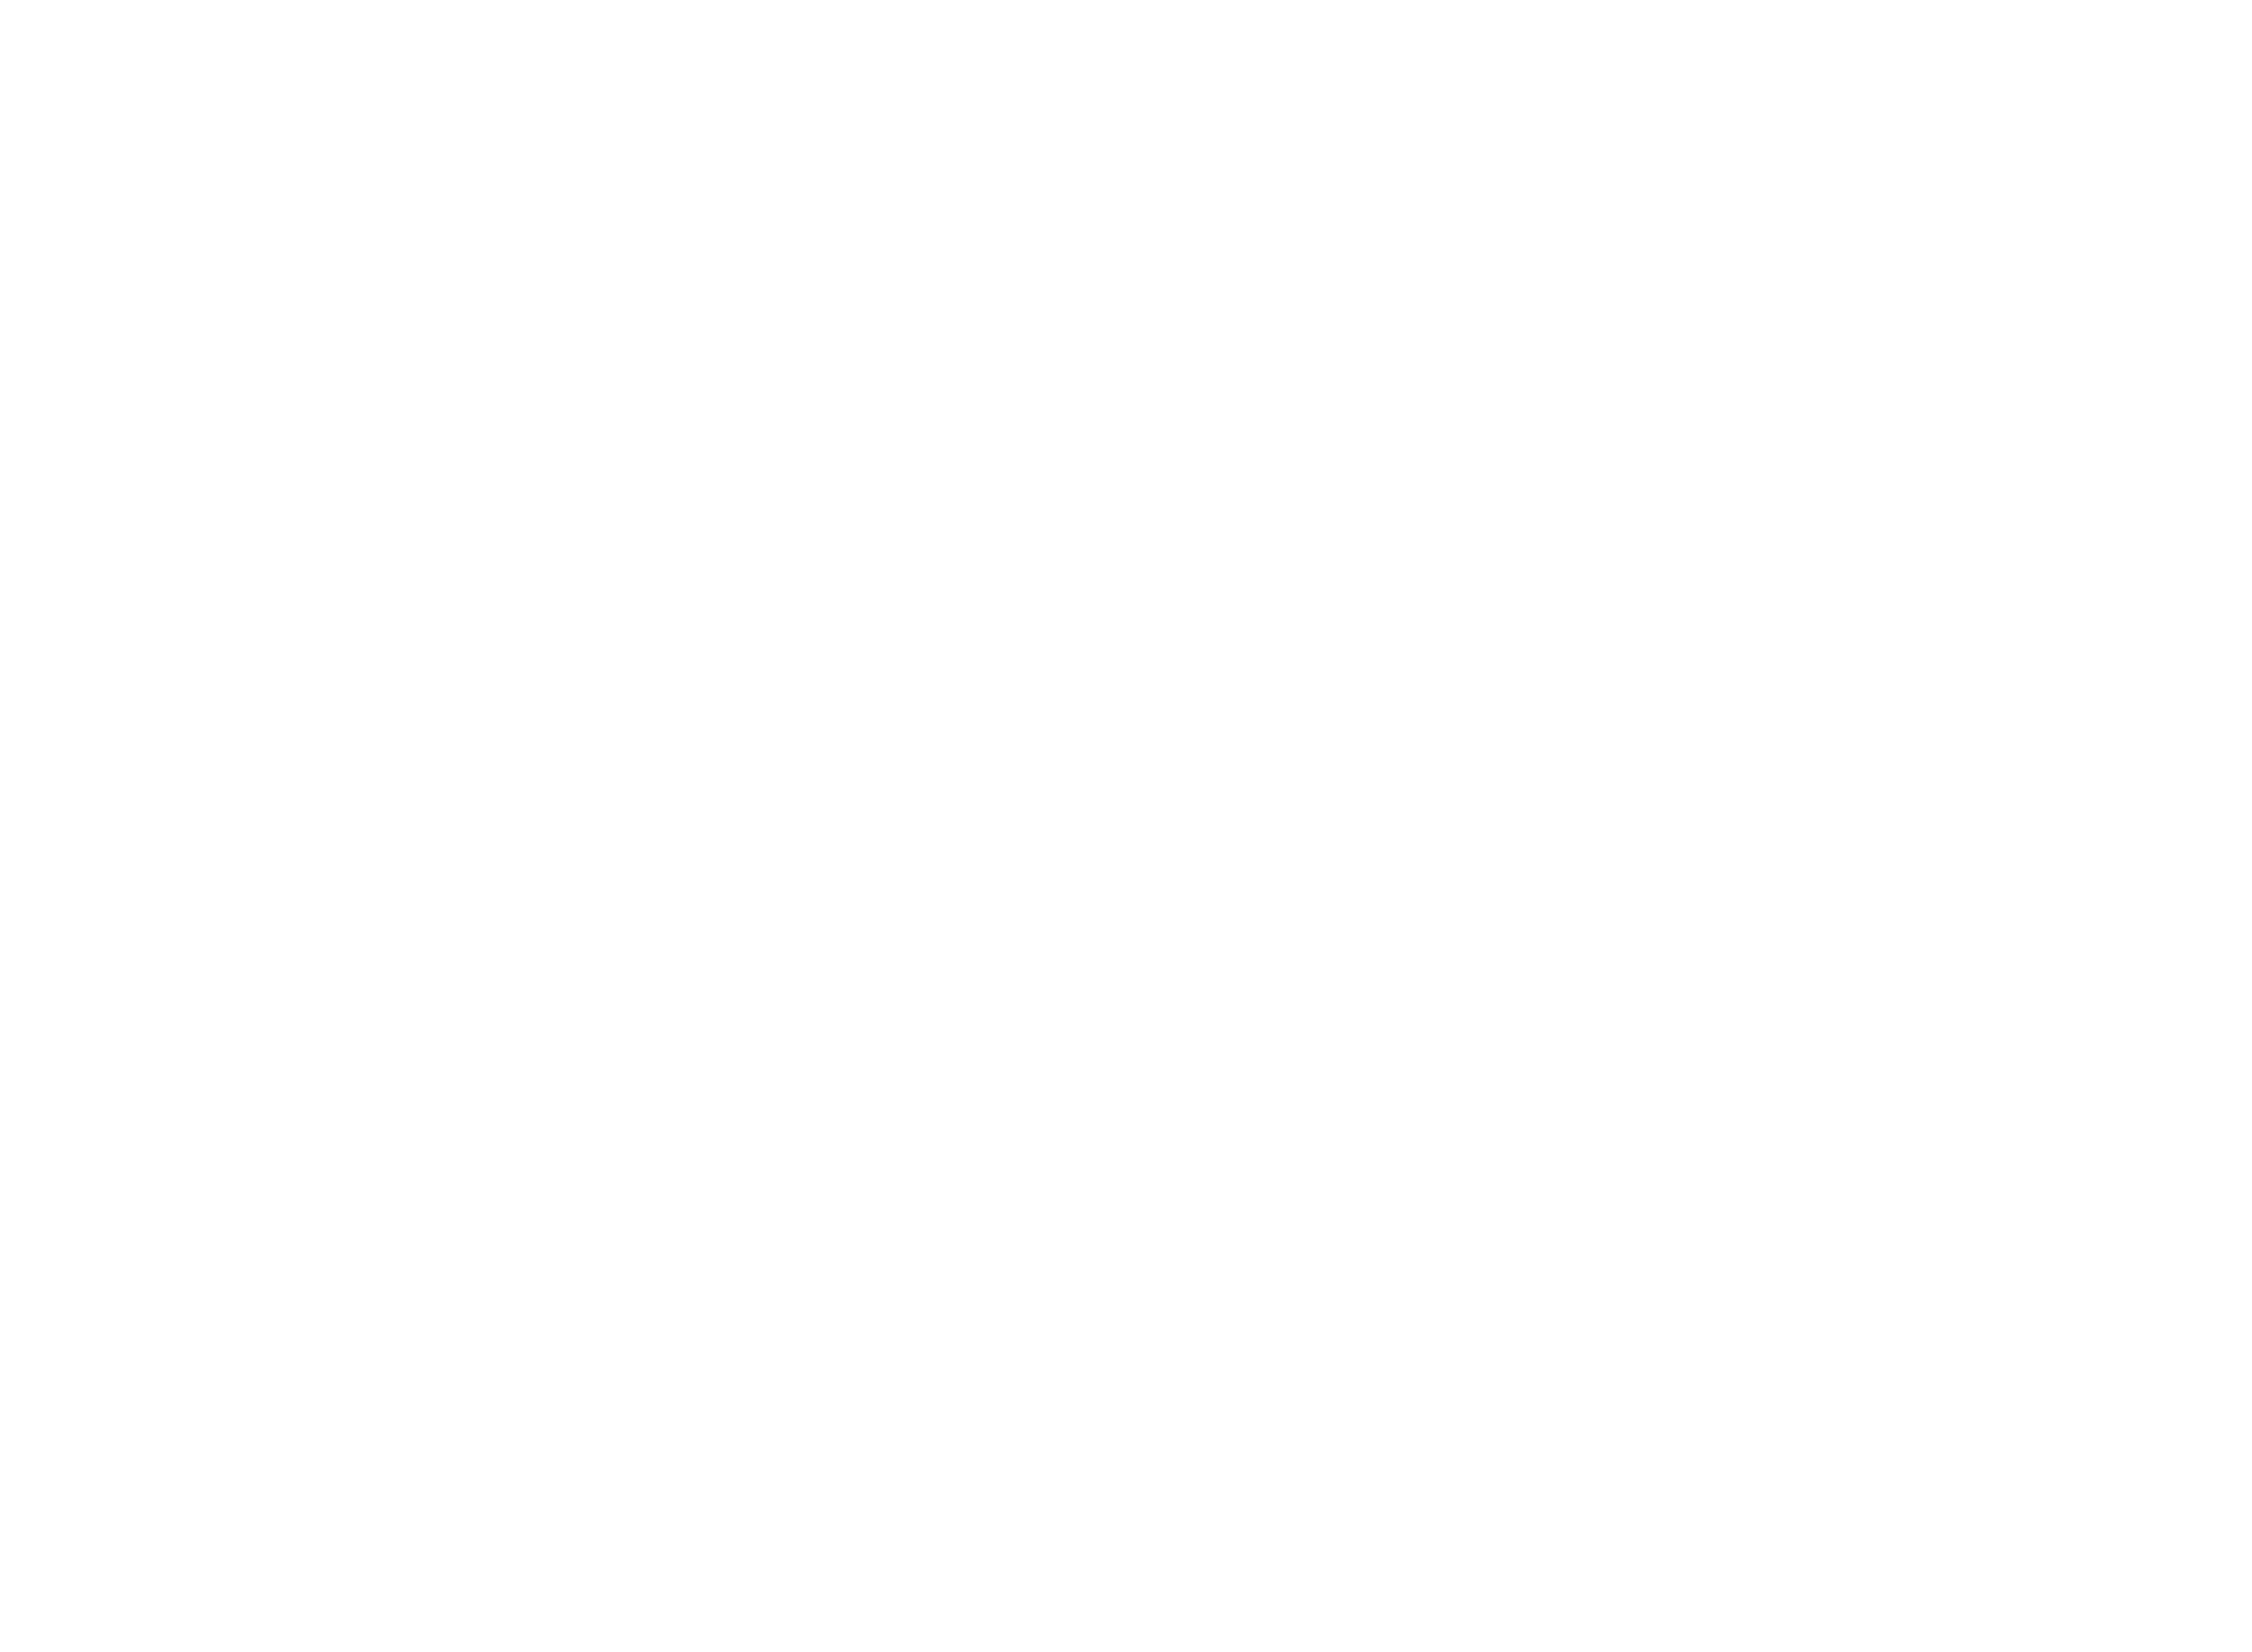 pathway clipart life journey